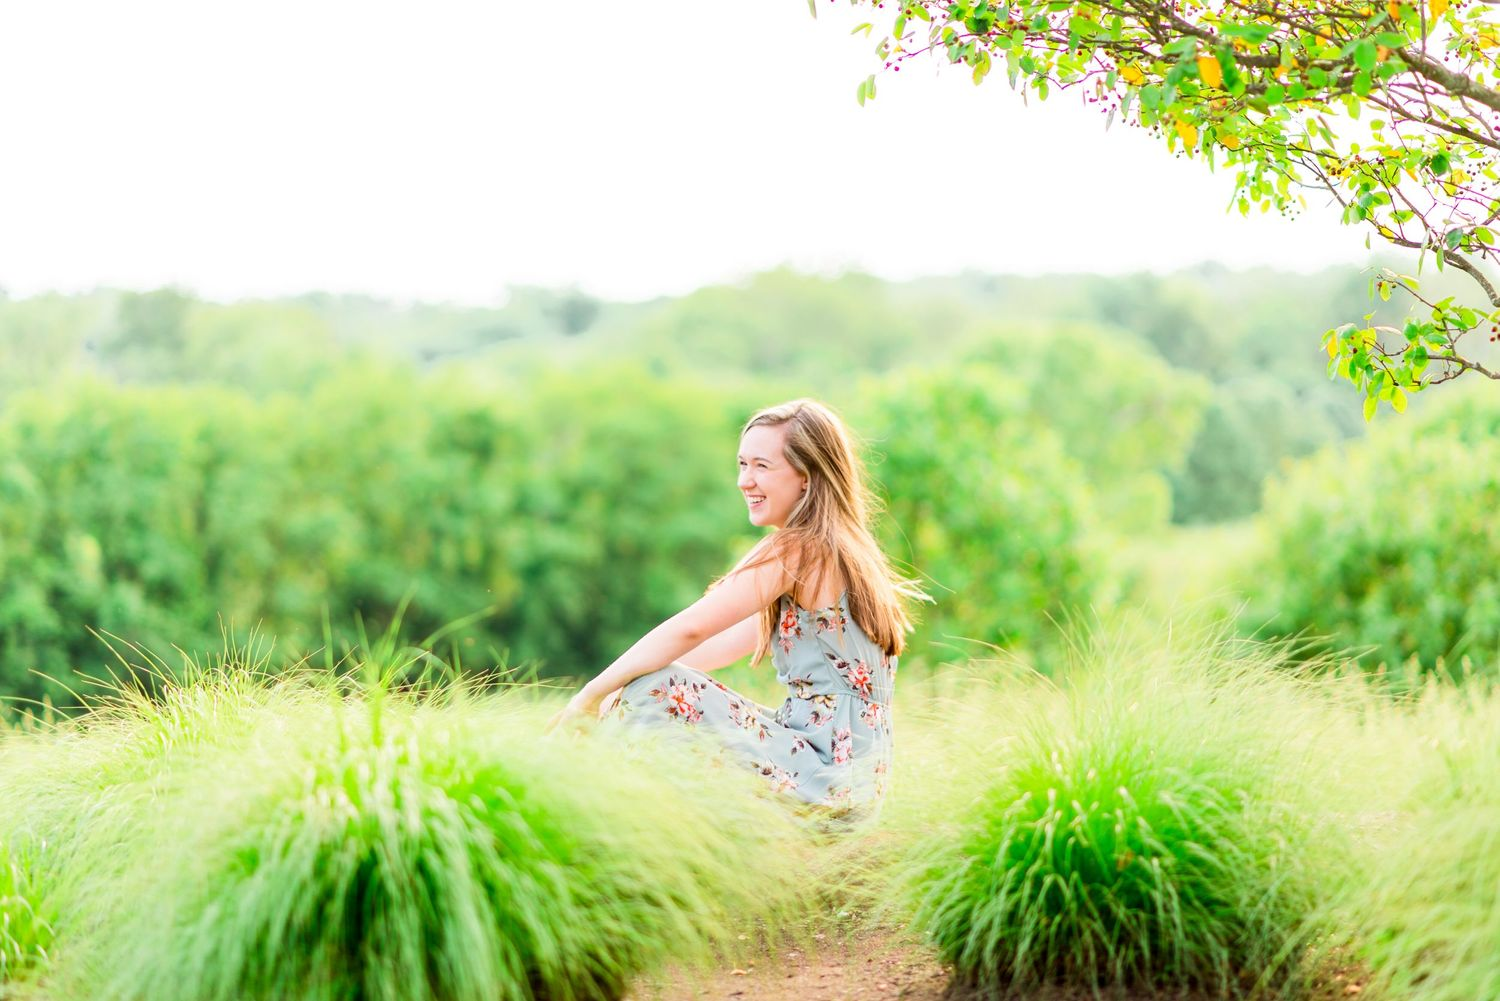 young woman sitting in field of tall light green grass under overcasts sky laughing for Chicago senior pictures